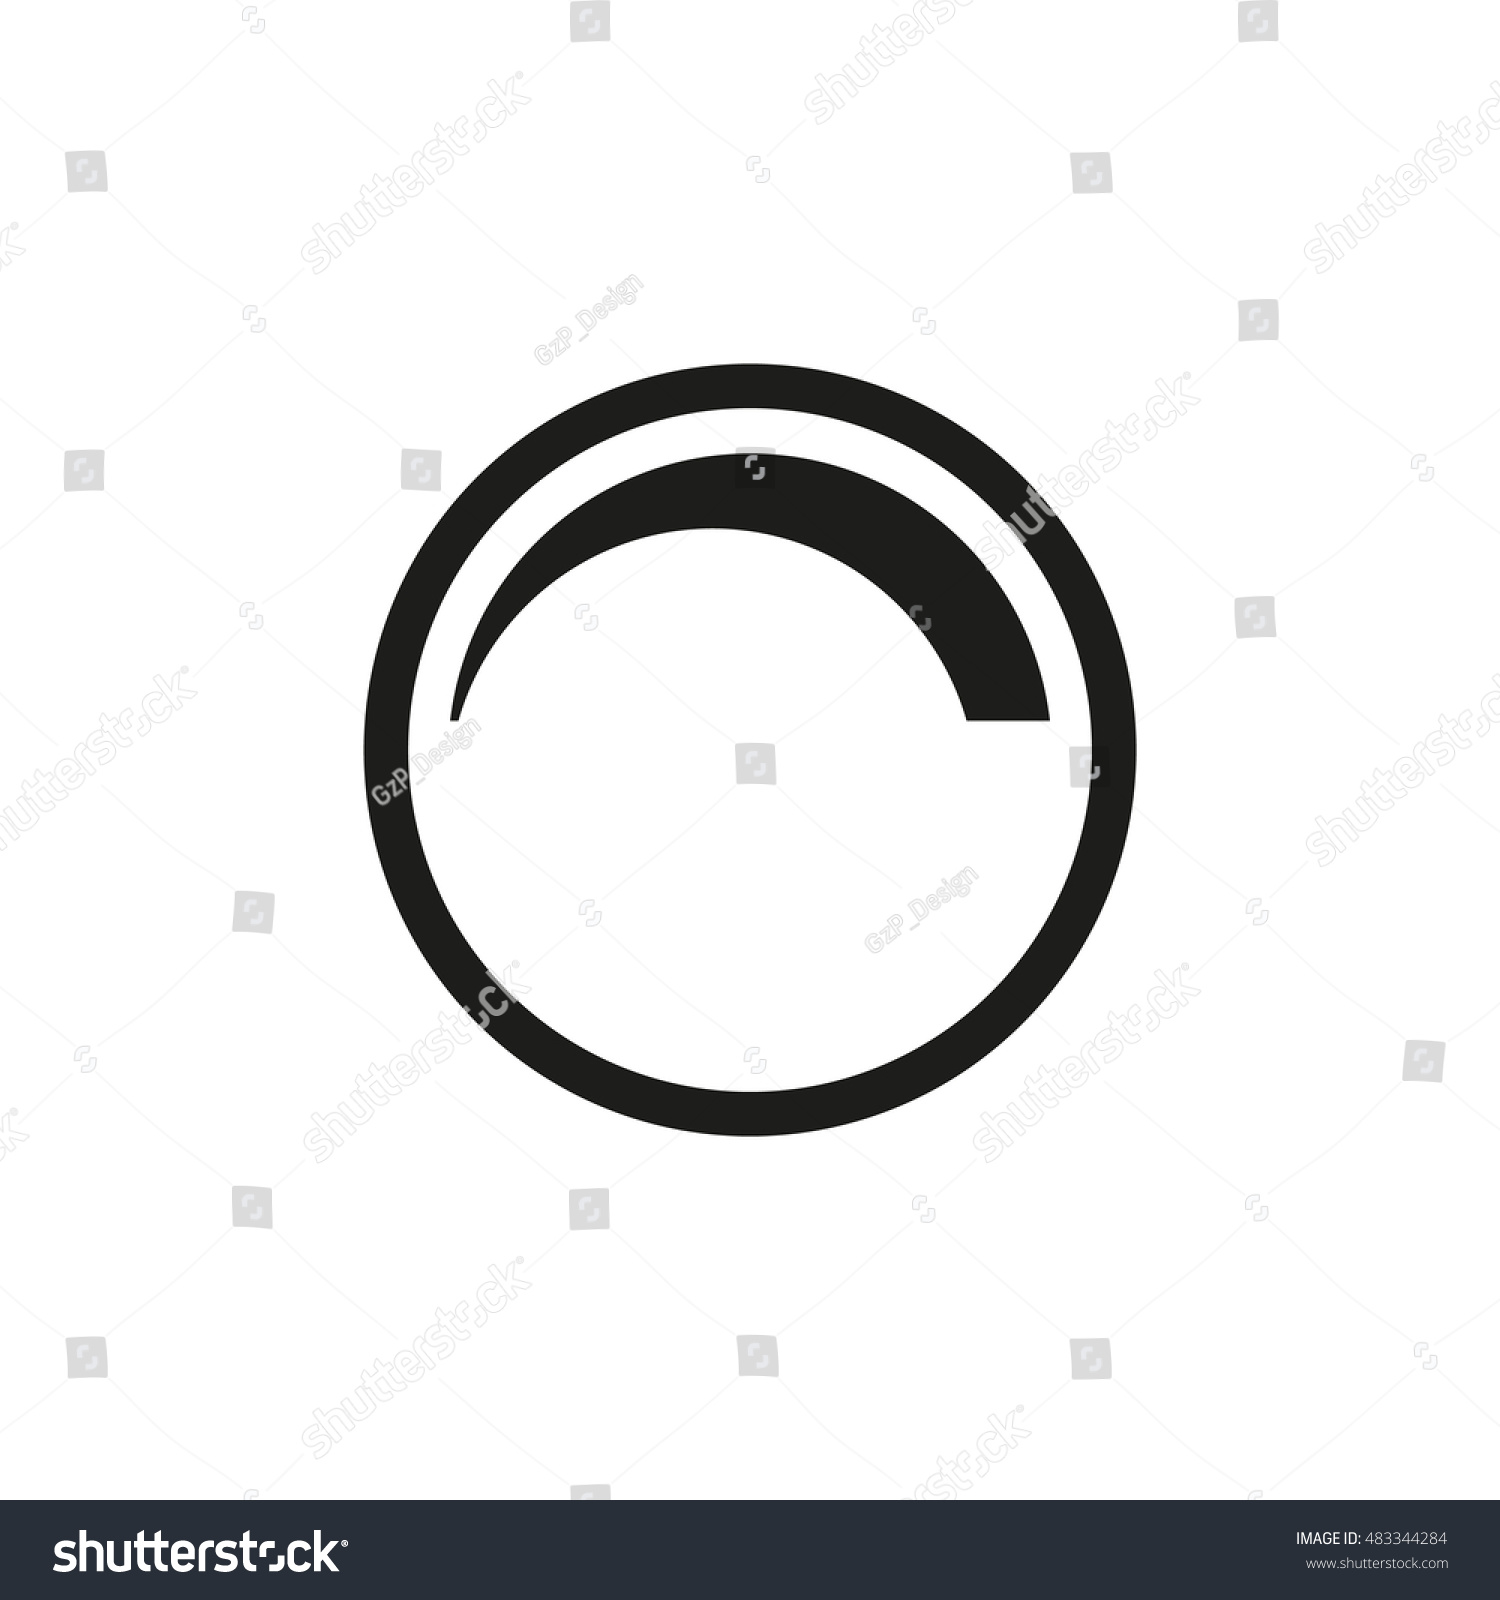 Dimmable icon icon led light vector stock vector 483344284 dimmable icon icon for led light vector illustration biocorpaavc Images